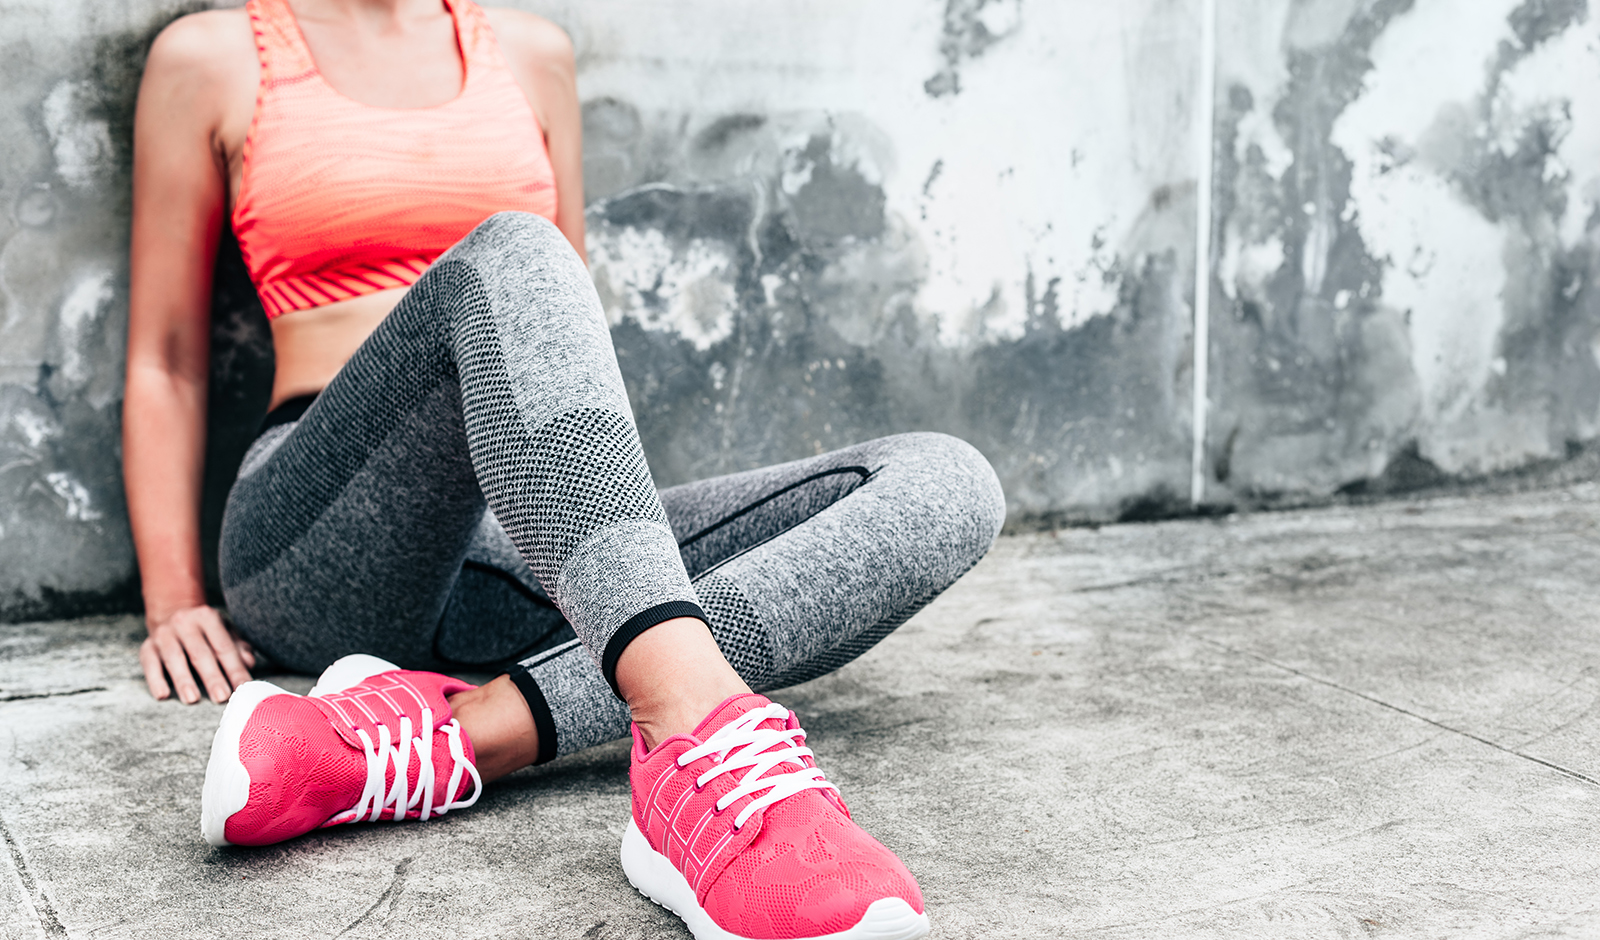 7-Ways-to-Look-Stylish-While-Working-Out-main-image